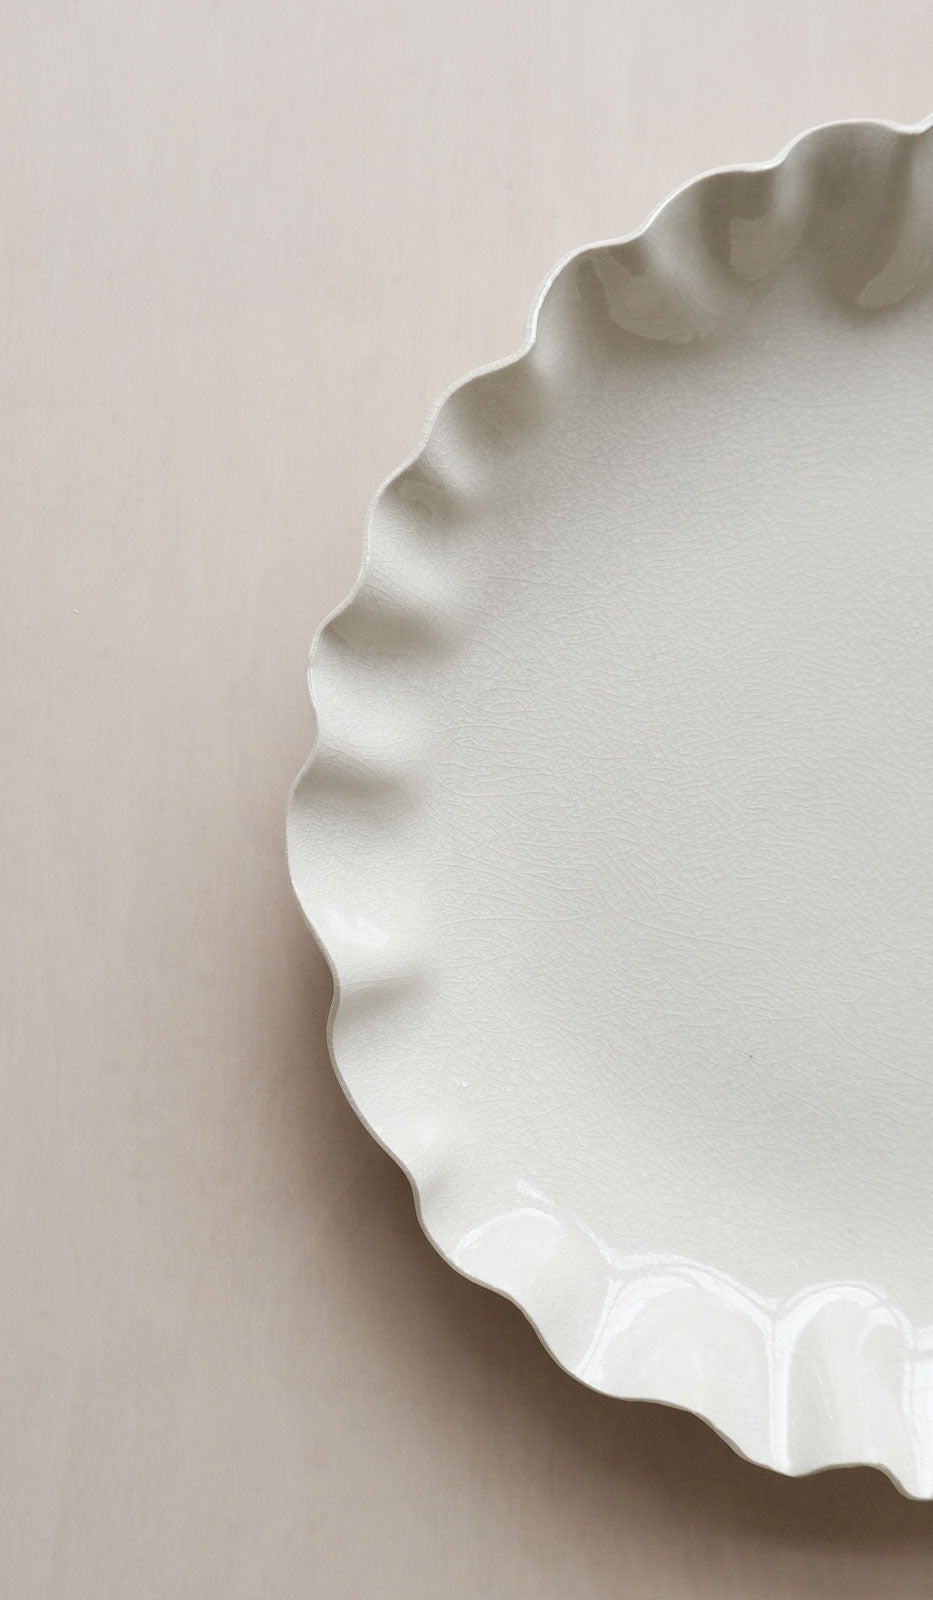 Nathalee Paolinelli Shell Bowl